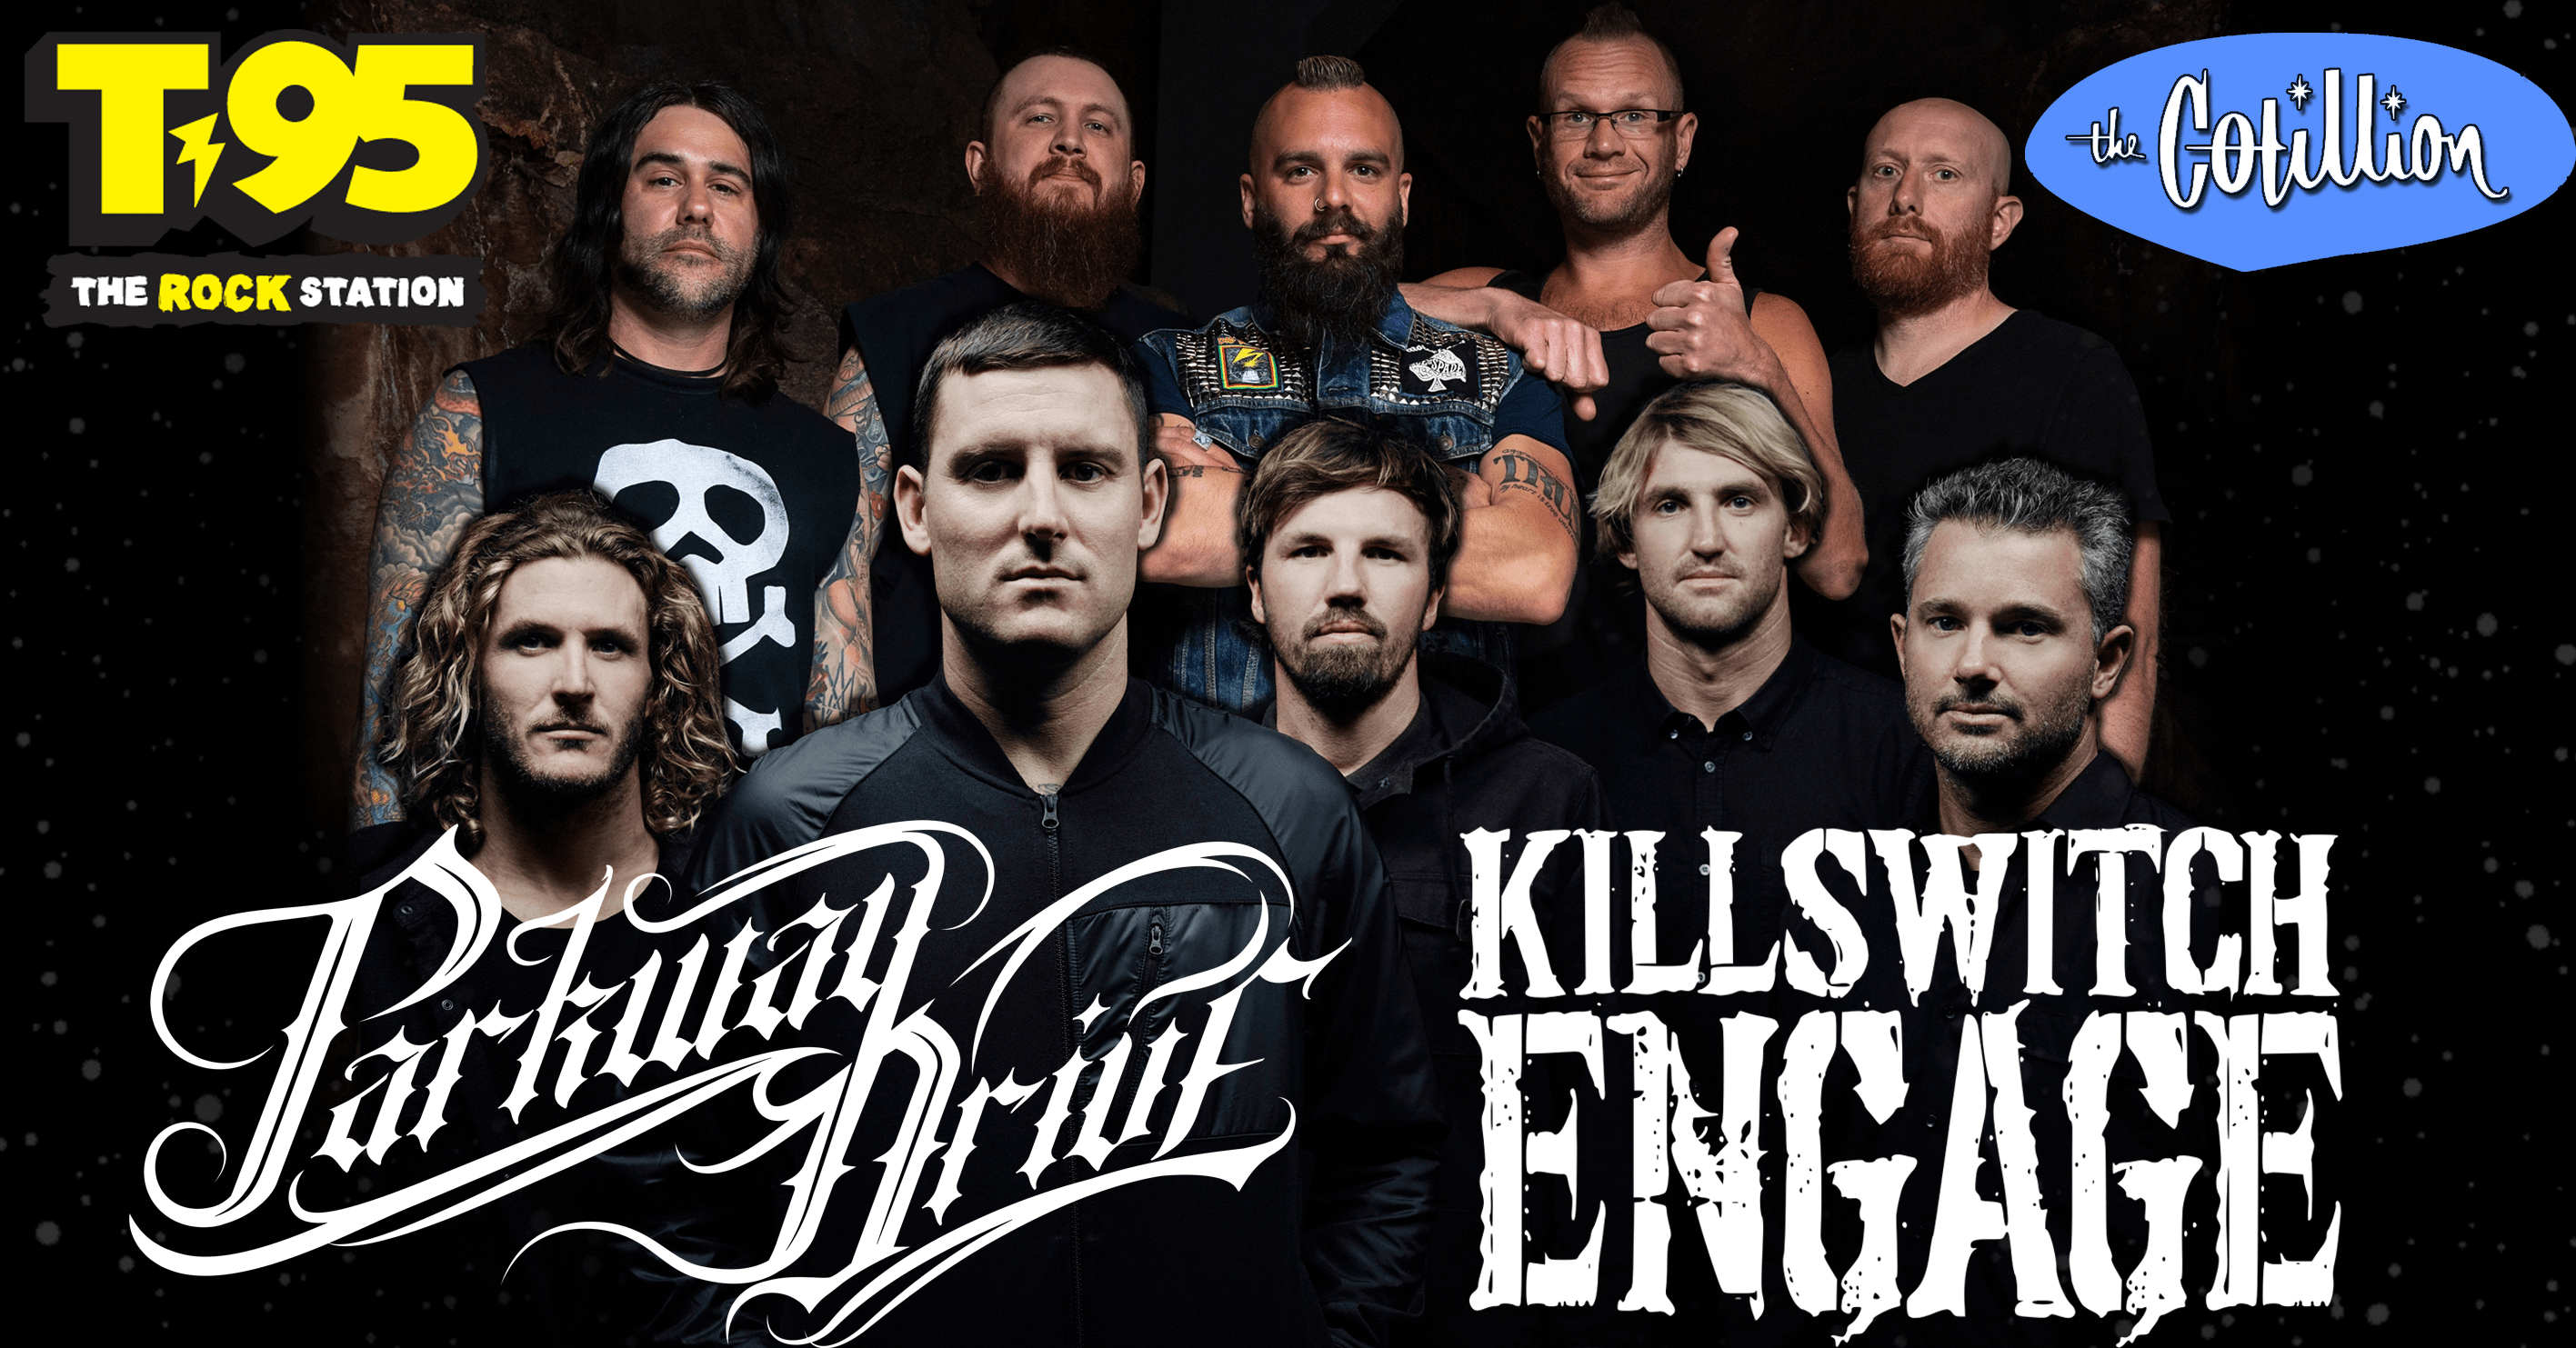 Killswitch Engage & Parkway Drive | 95 1 KICT-FM